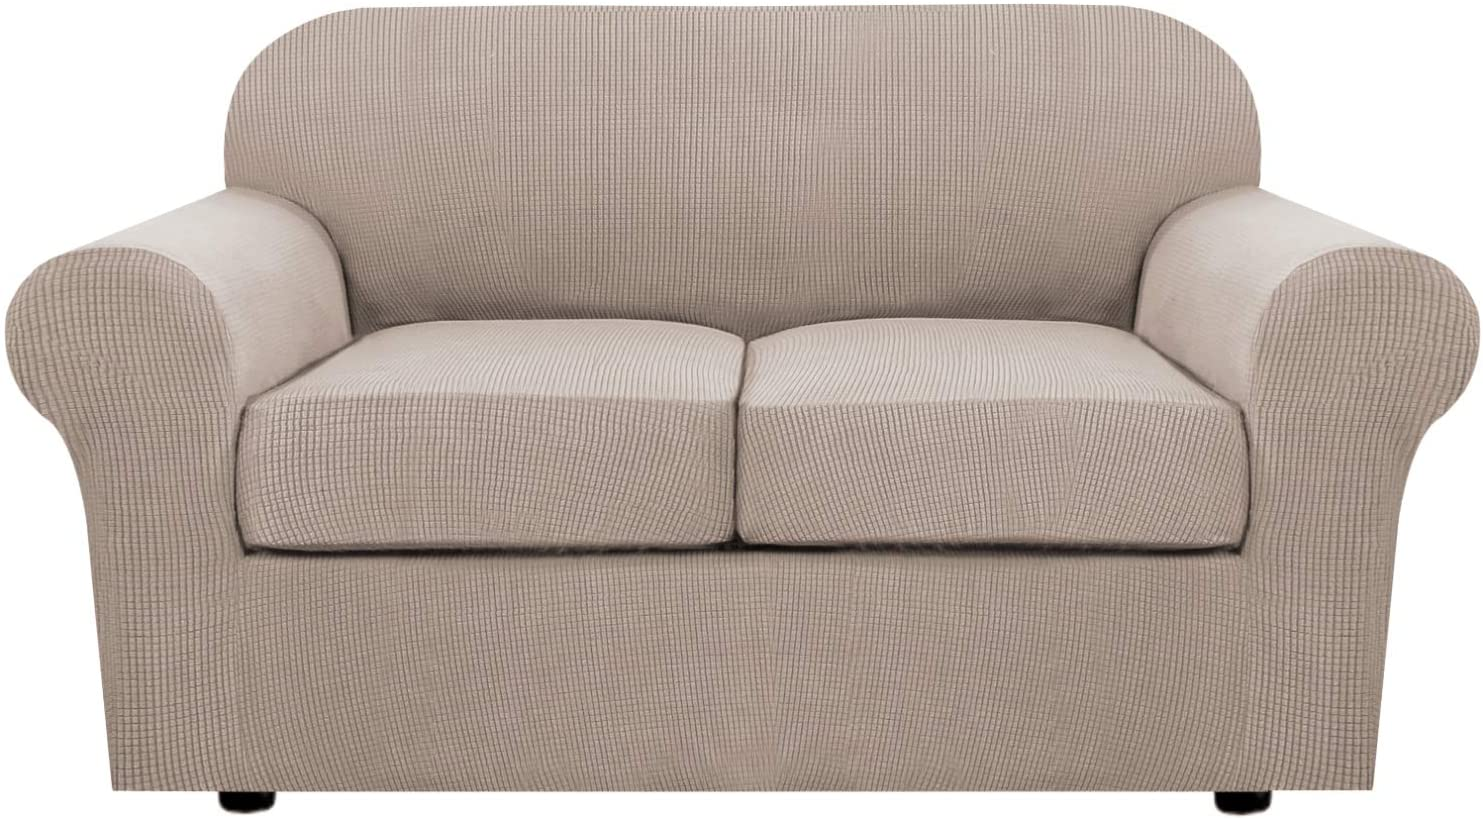 3 Piece Stretch Sofa Covers for 2 Cushion Loveseat Couch Covers for Living Room Sofa Slipcovers Furniture Cover (Base Cover Plus 2 Seat Cushion Covers) Thicker Jacquard Fabric(Medium Sofa, Sand)